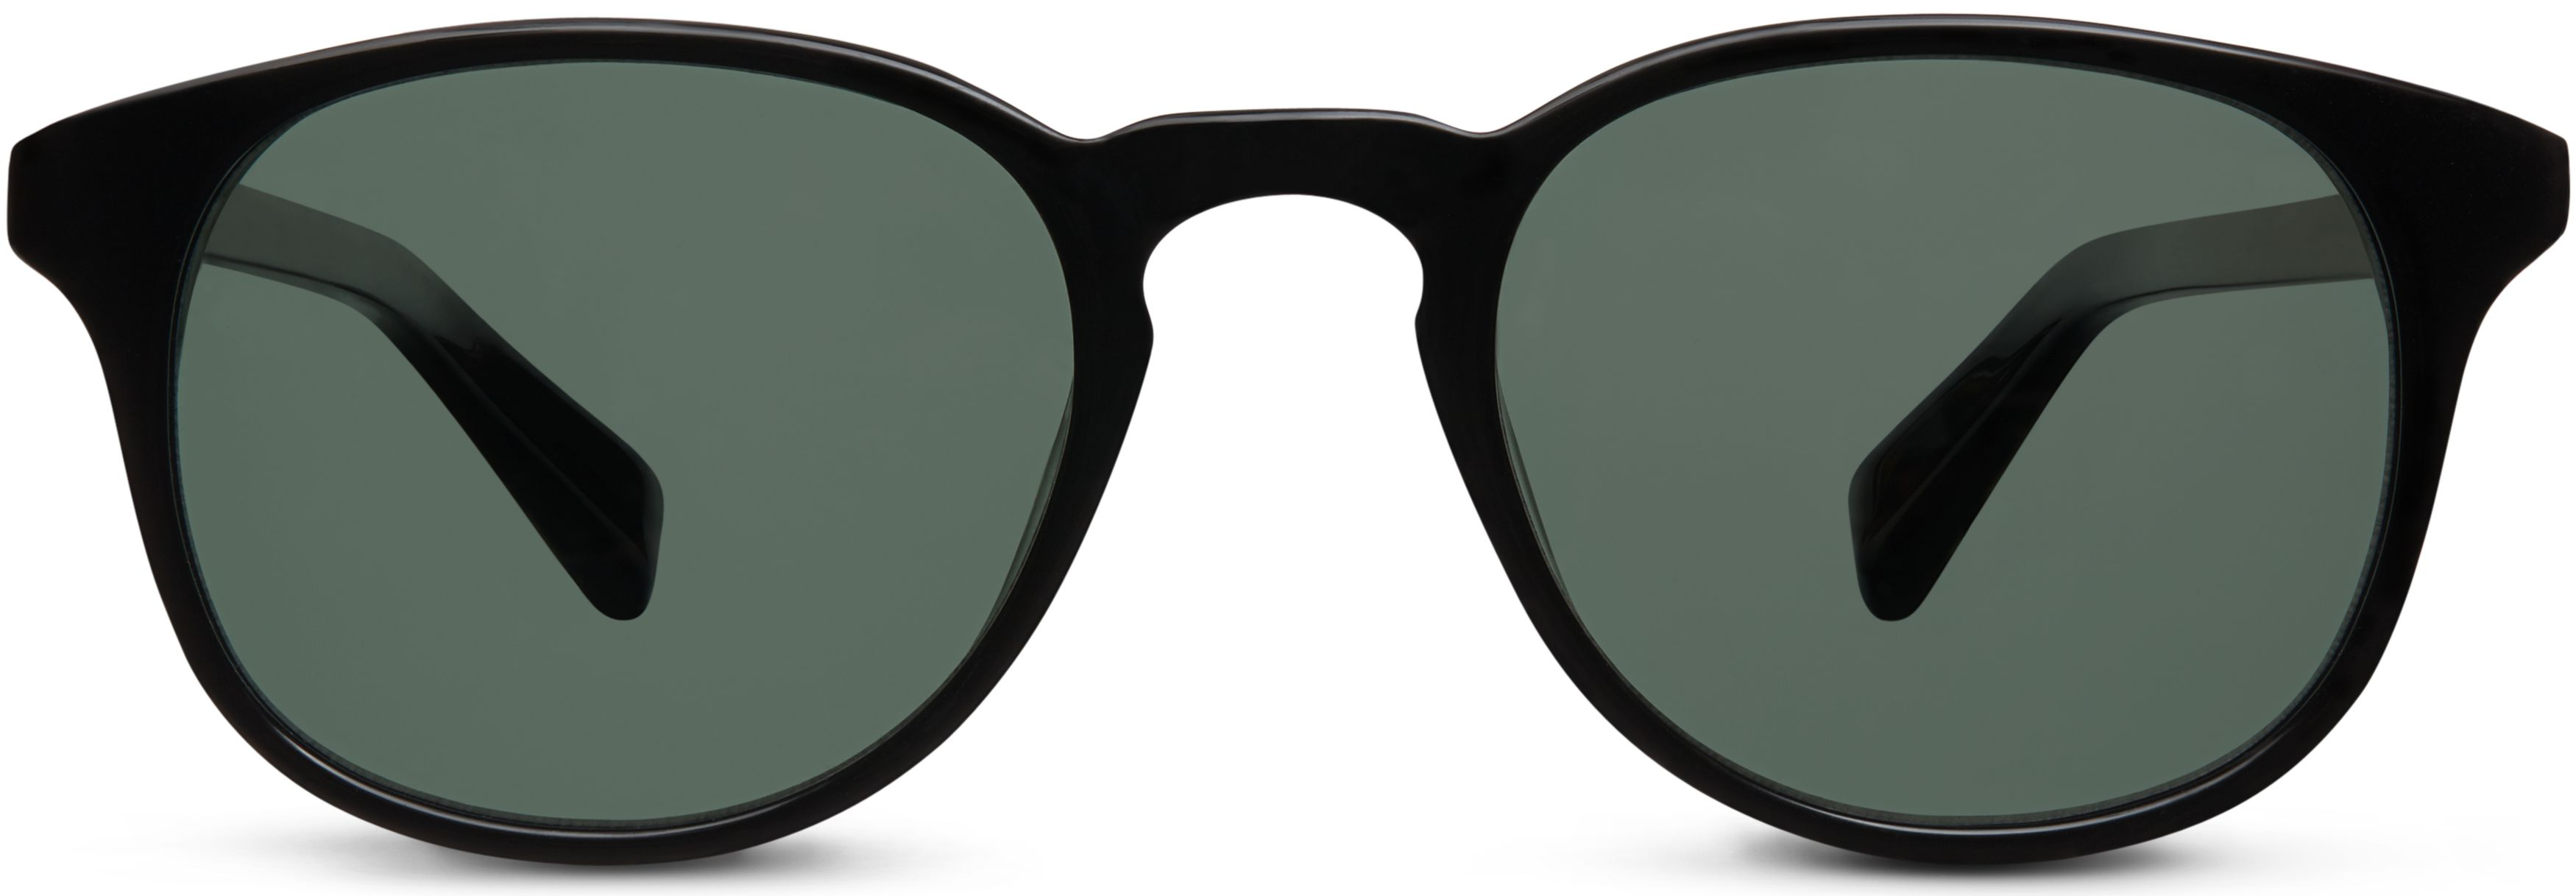 02a1b417d1 Downing Sunglasses in Jet Black with Green Grey lenses for Men ...